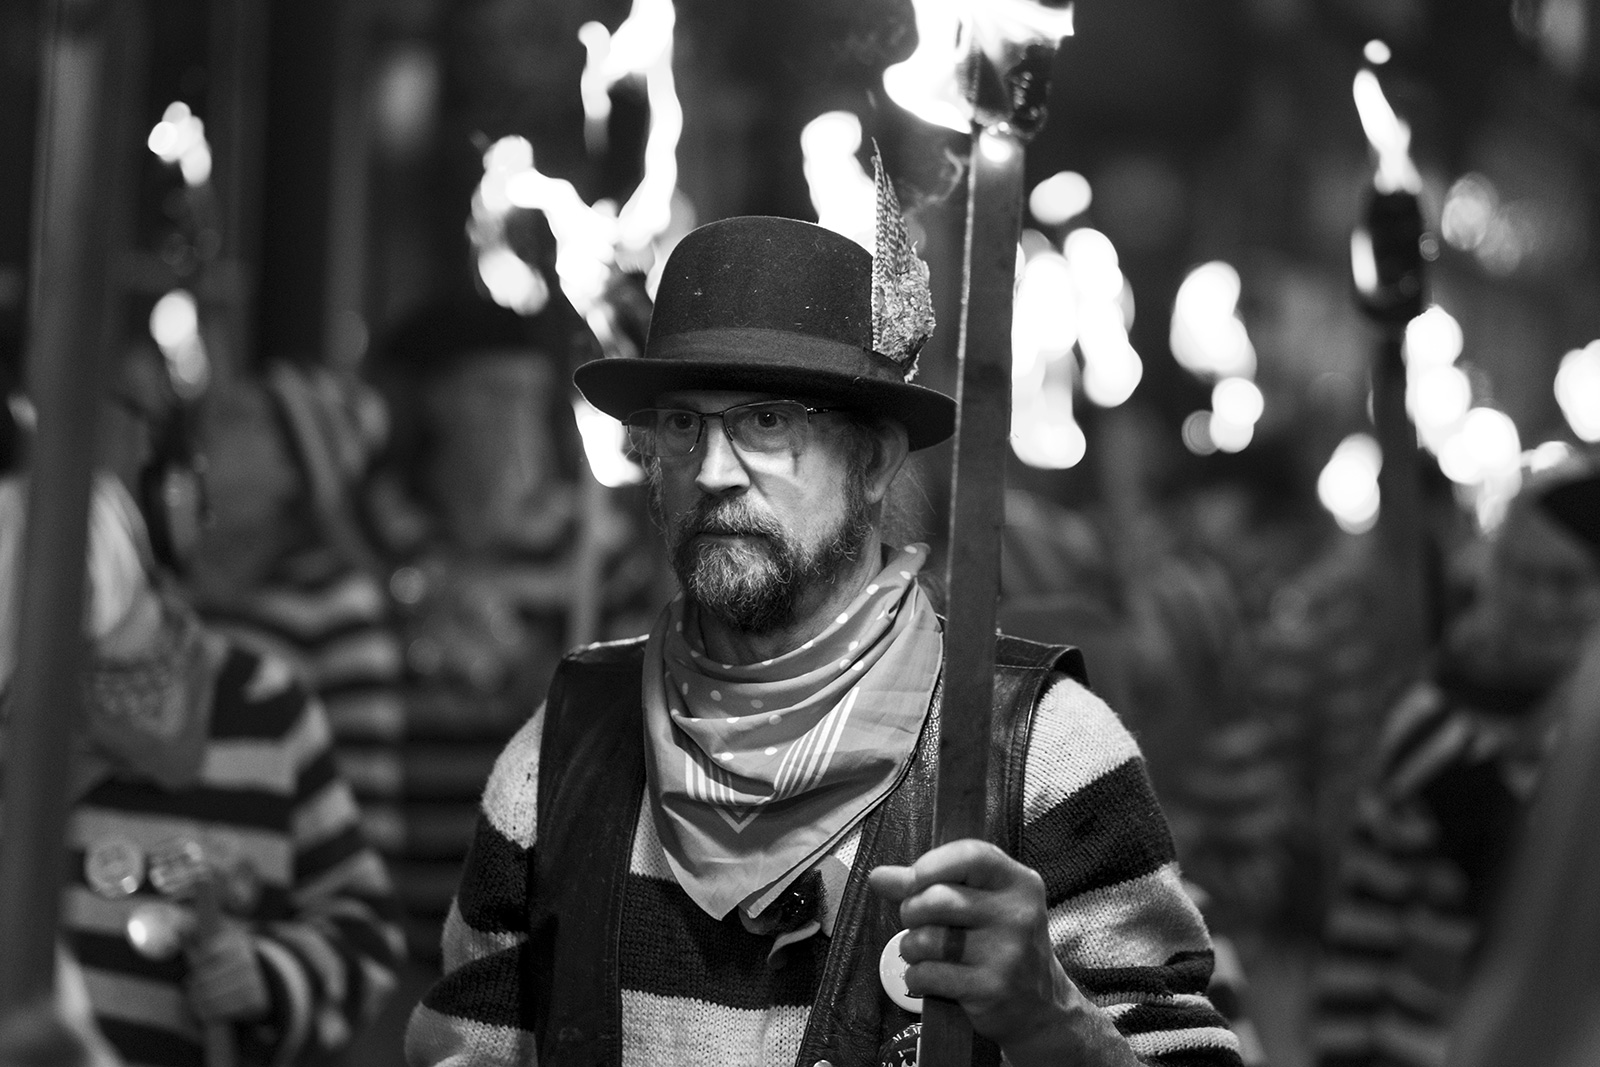 Male torch bearer in bowler hat and spectacles Lewes bonfire night Cliffe High Street Lewes East Sussex UK, black and white night photography Britain © P. Maton 2018 eyeteeth.net